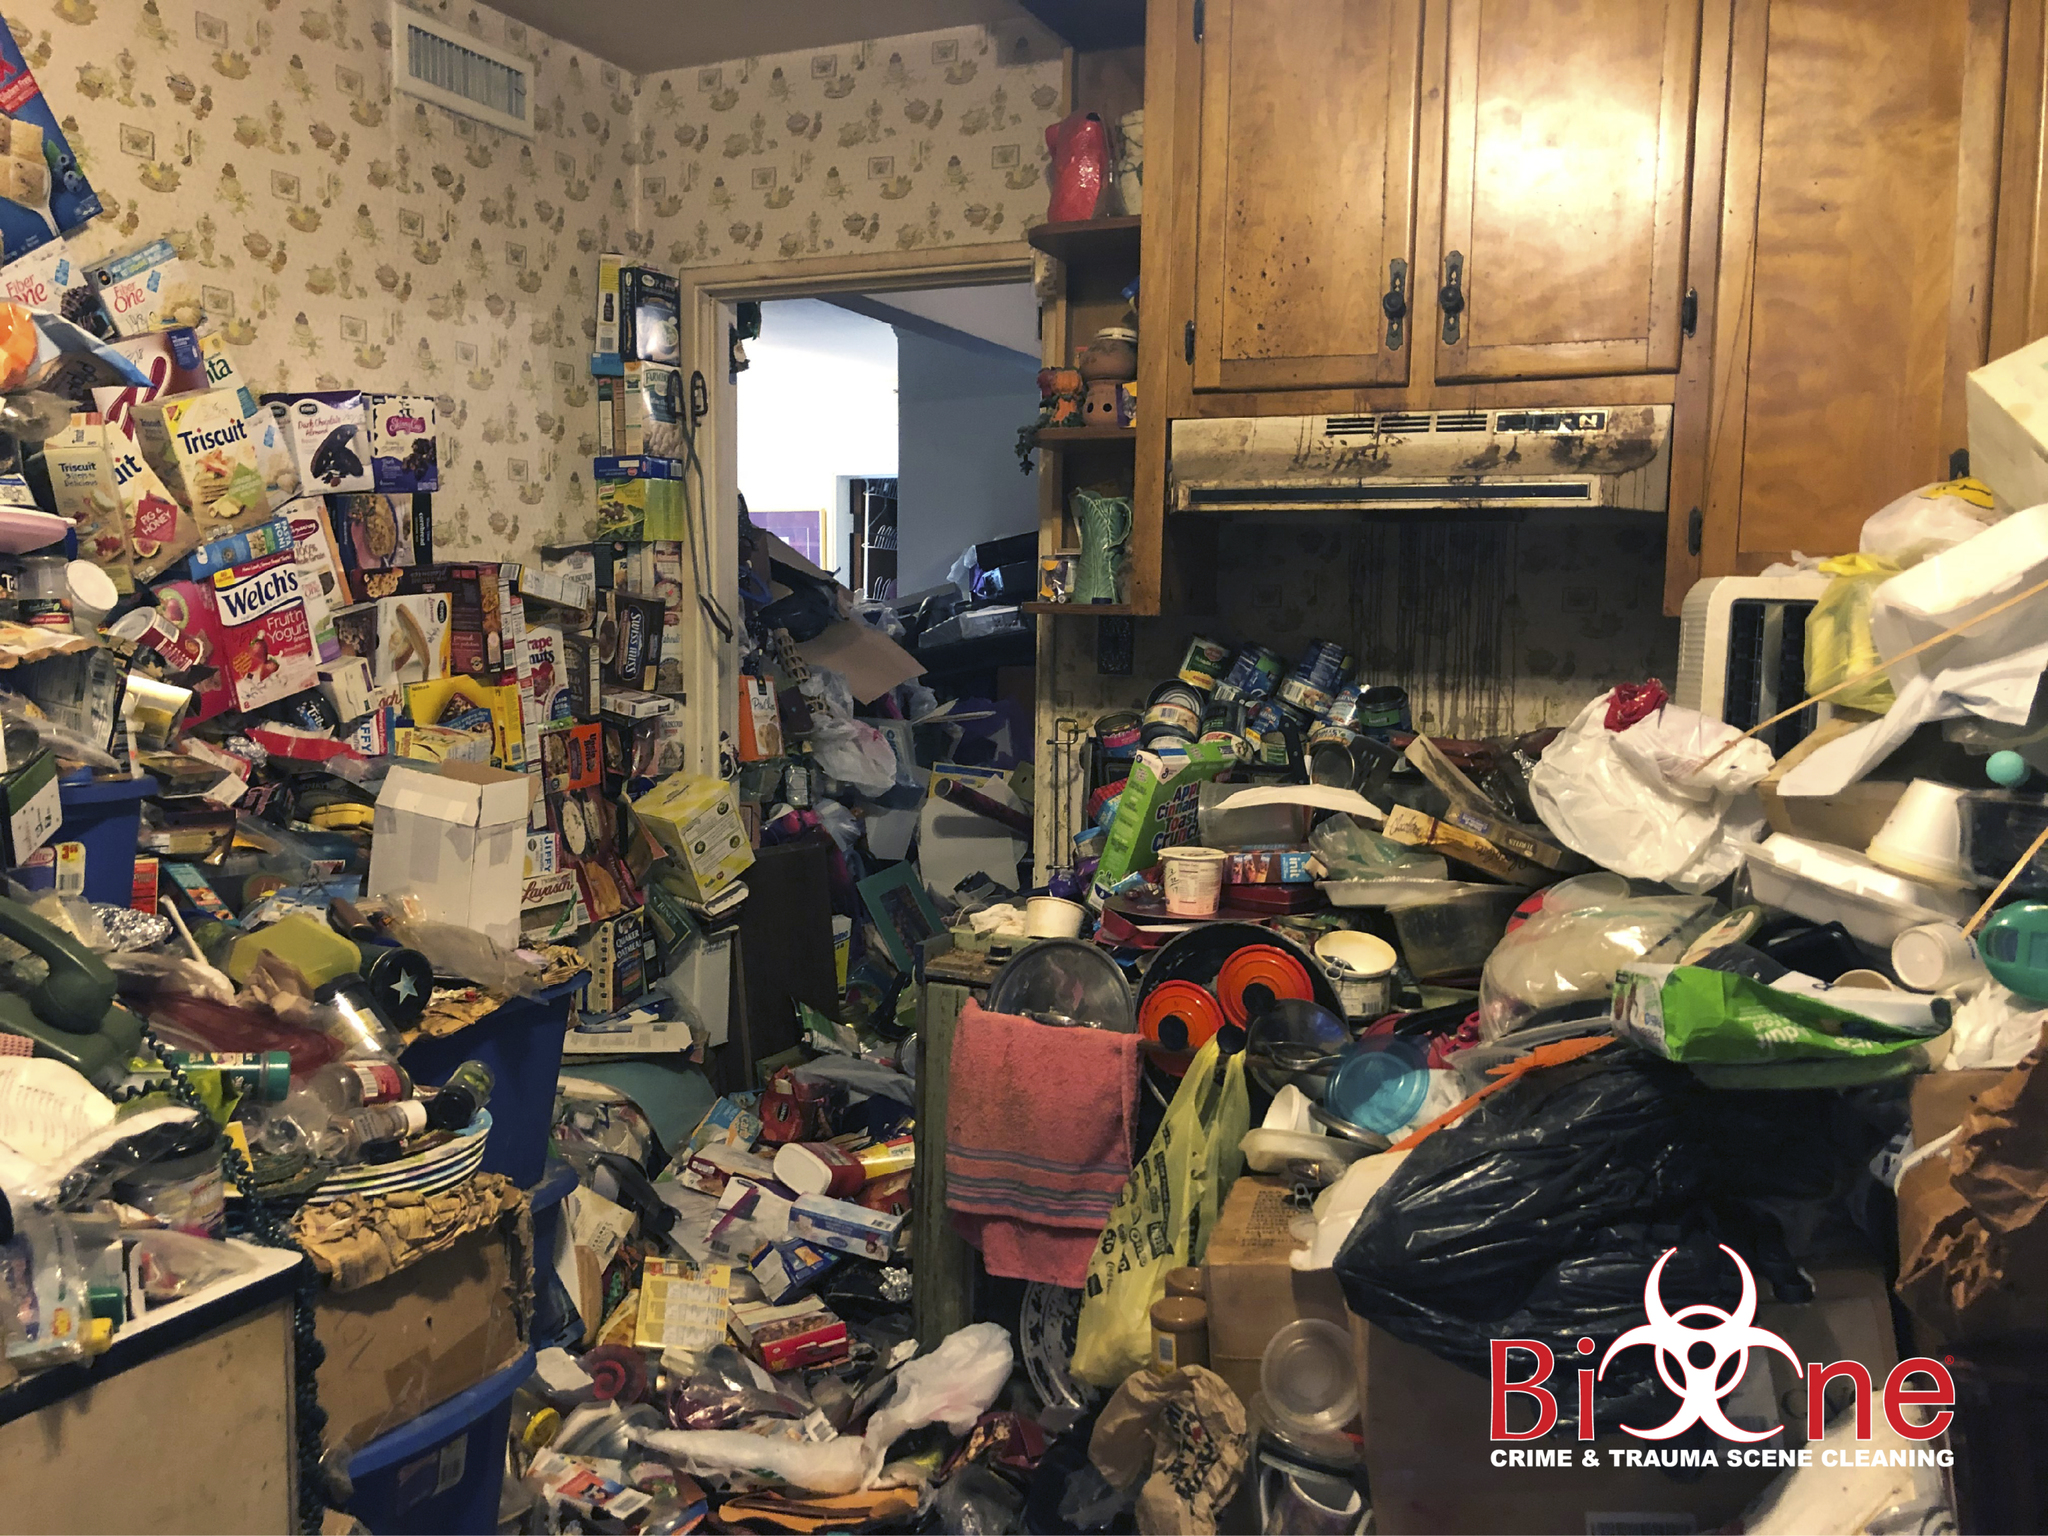 "<img src=""https://s3.amazonaws.com/news-img/client_8346/8346_1595434682503-Hoarding_Image.jpg"" alt = ""Home with hoarding clutter and trash that needs to be removed"" >"